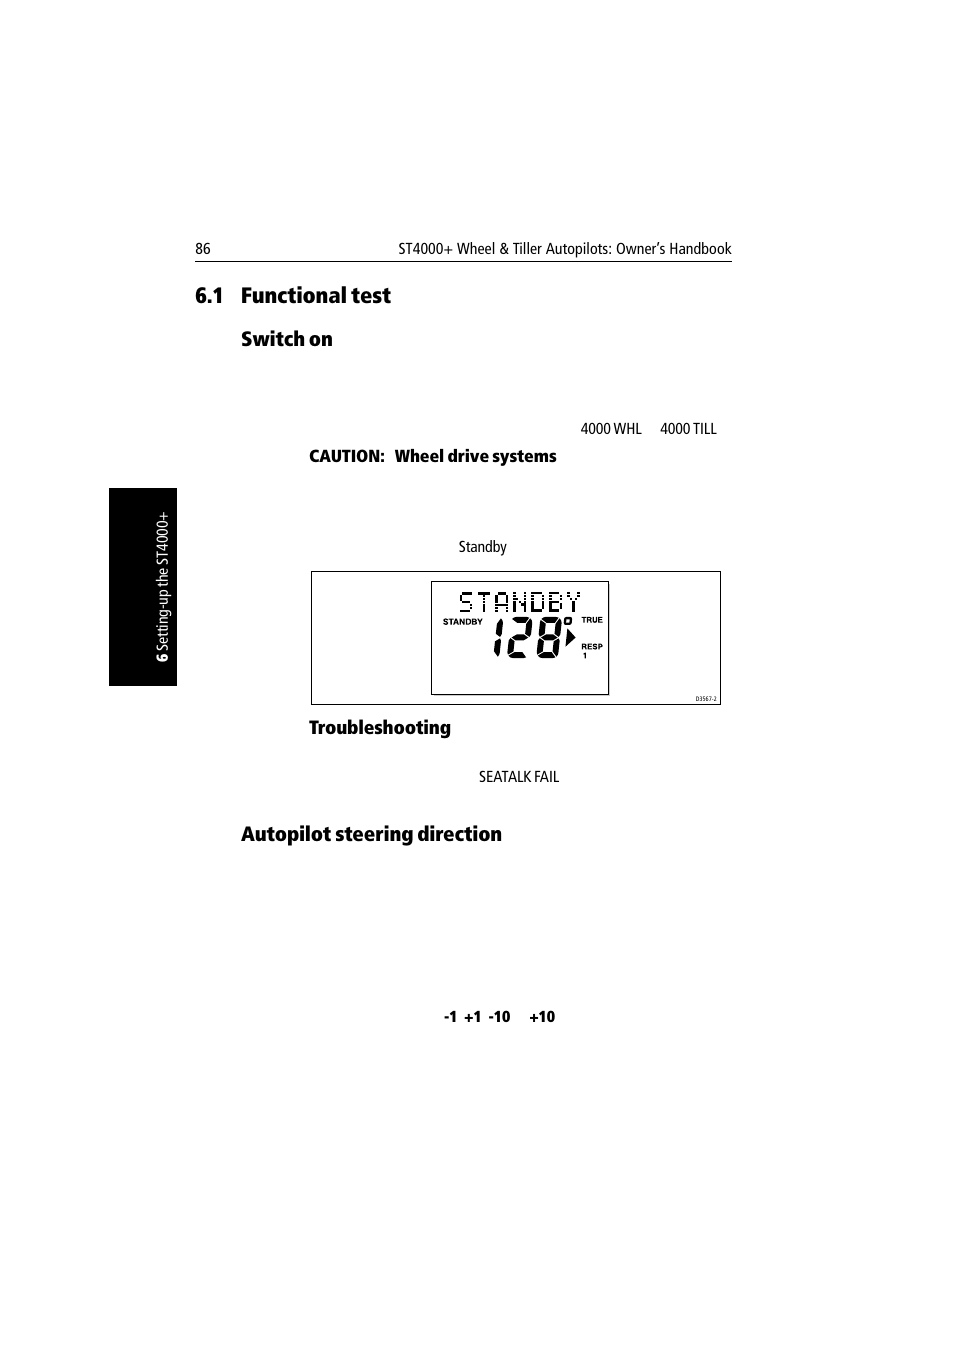 1 functional test, Switch on, Troubleshooting | Raymarine autopilot + ST4000+  User Manual | Page 101 / 145